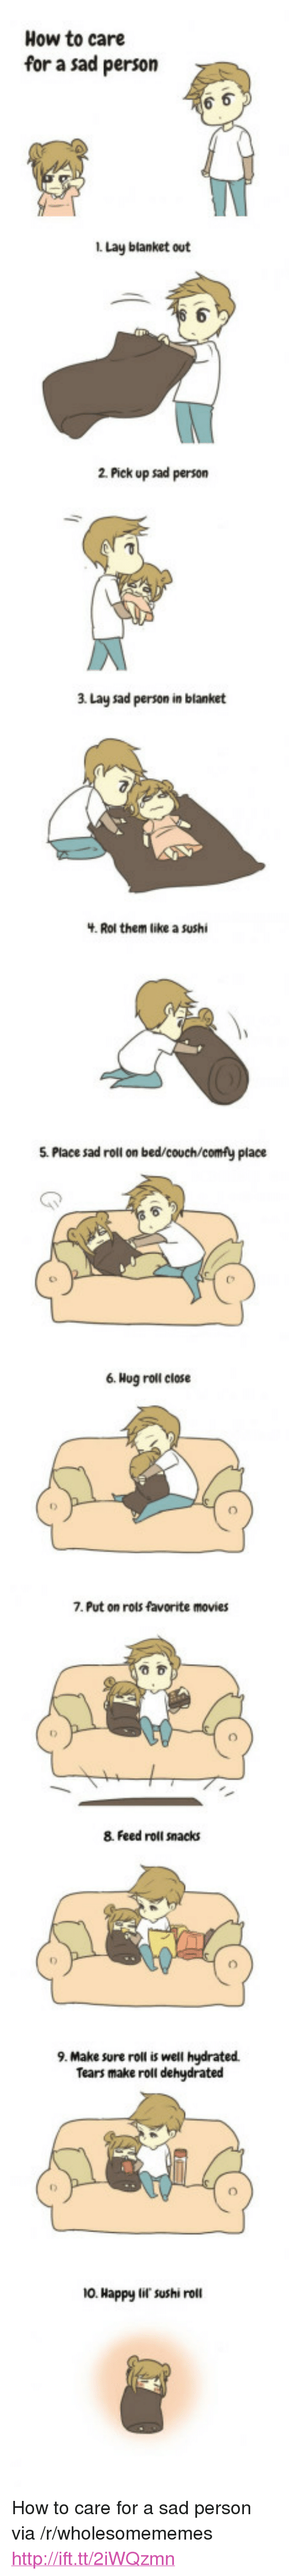 """Lit, Movies, and Couch: How to care  for a sad person  i. Lay blanket out  IT  2 Pick up sad person  3 Lay sad person in blanket  .Rol them like a sushi  5. Place sad roll on bed/couch/comfy place  6. Hog roll close  7. Put on rols favorite movies  8. Feed roll snacks  9. Make sure roll is well hydrated  Tears make roll dehudrated  10. Happy lit sushi roll <p>How to care for a sad person via /r/wholesomememes <a href=""""http://ift.tt/2iWQzmn"""">http://ift.tt/2iWQzmn</a></p>"""